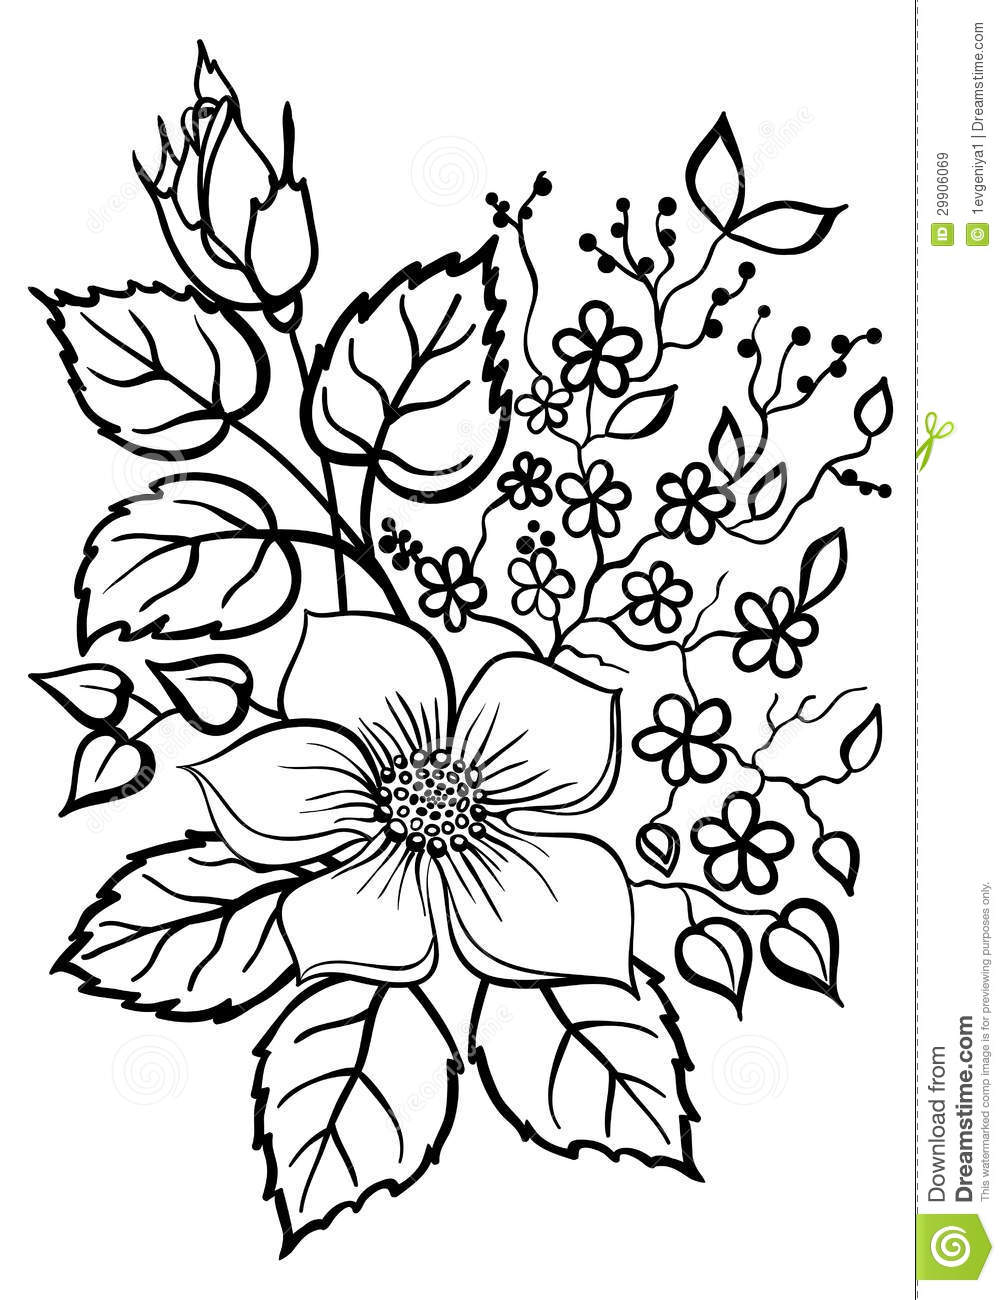 Line Drawings Of Flower Arrangements : Flower bouquet outline clipart panda free